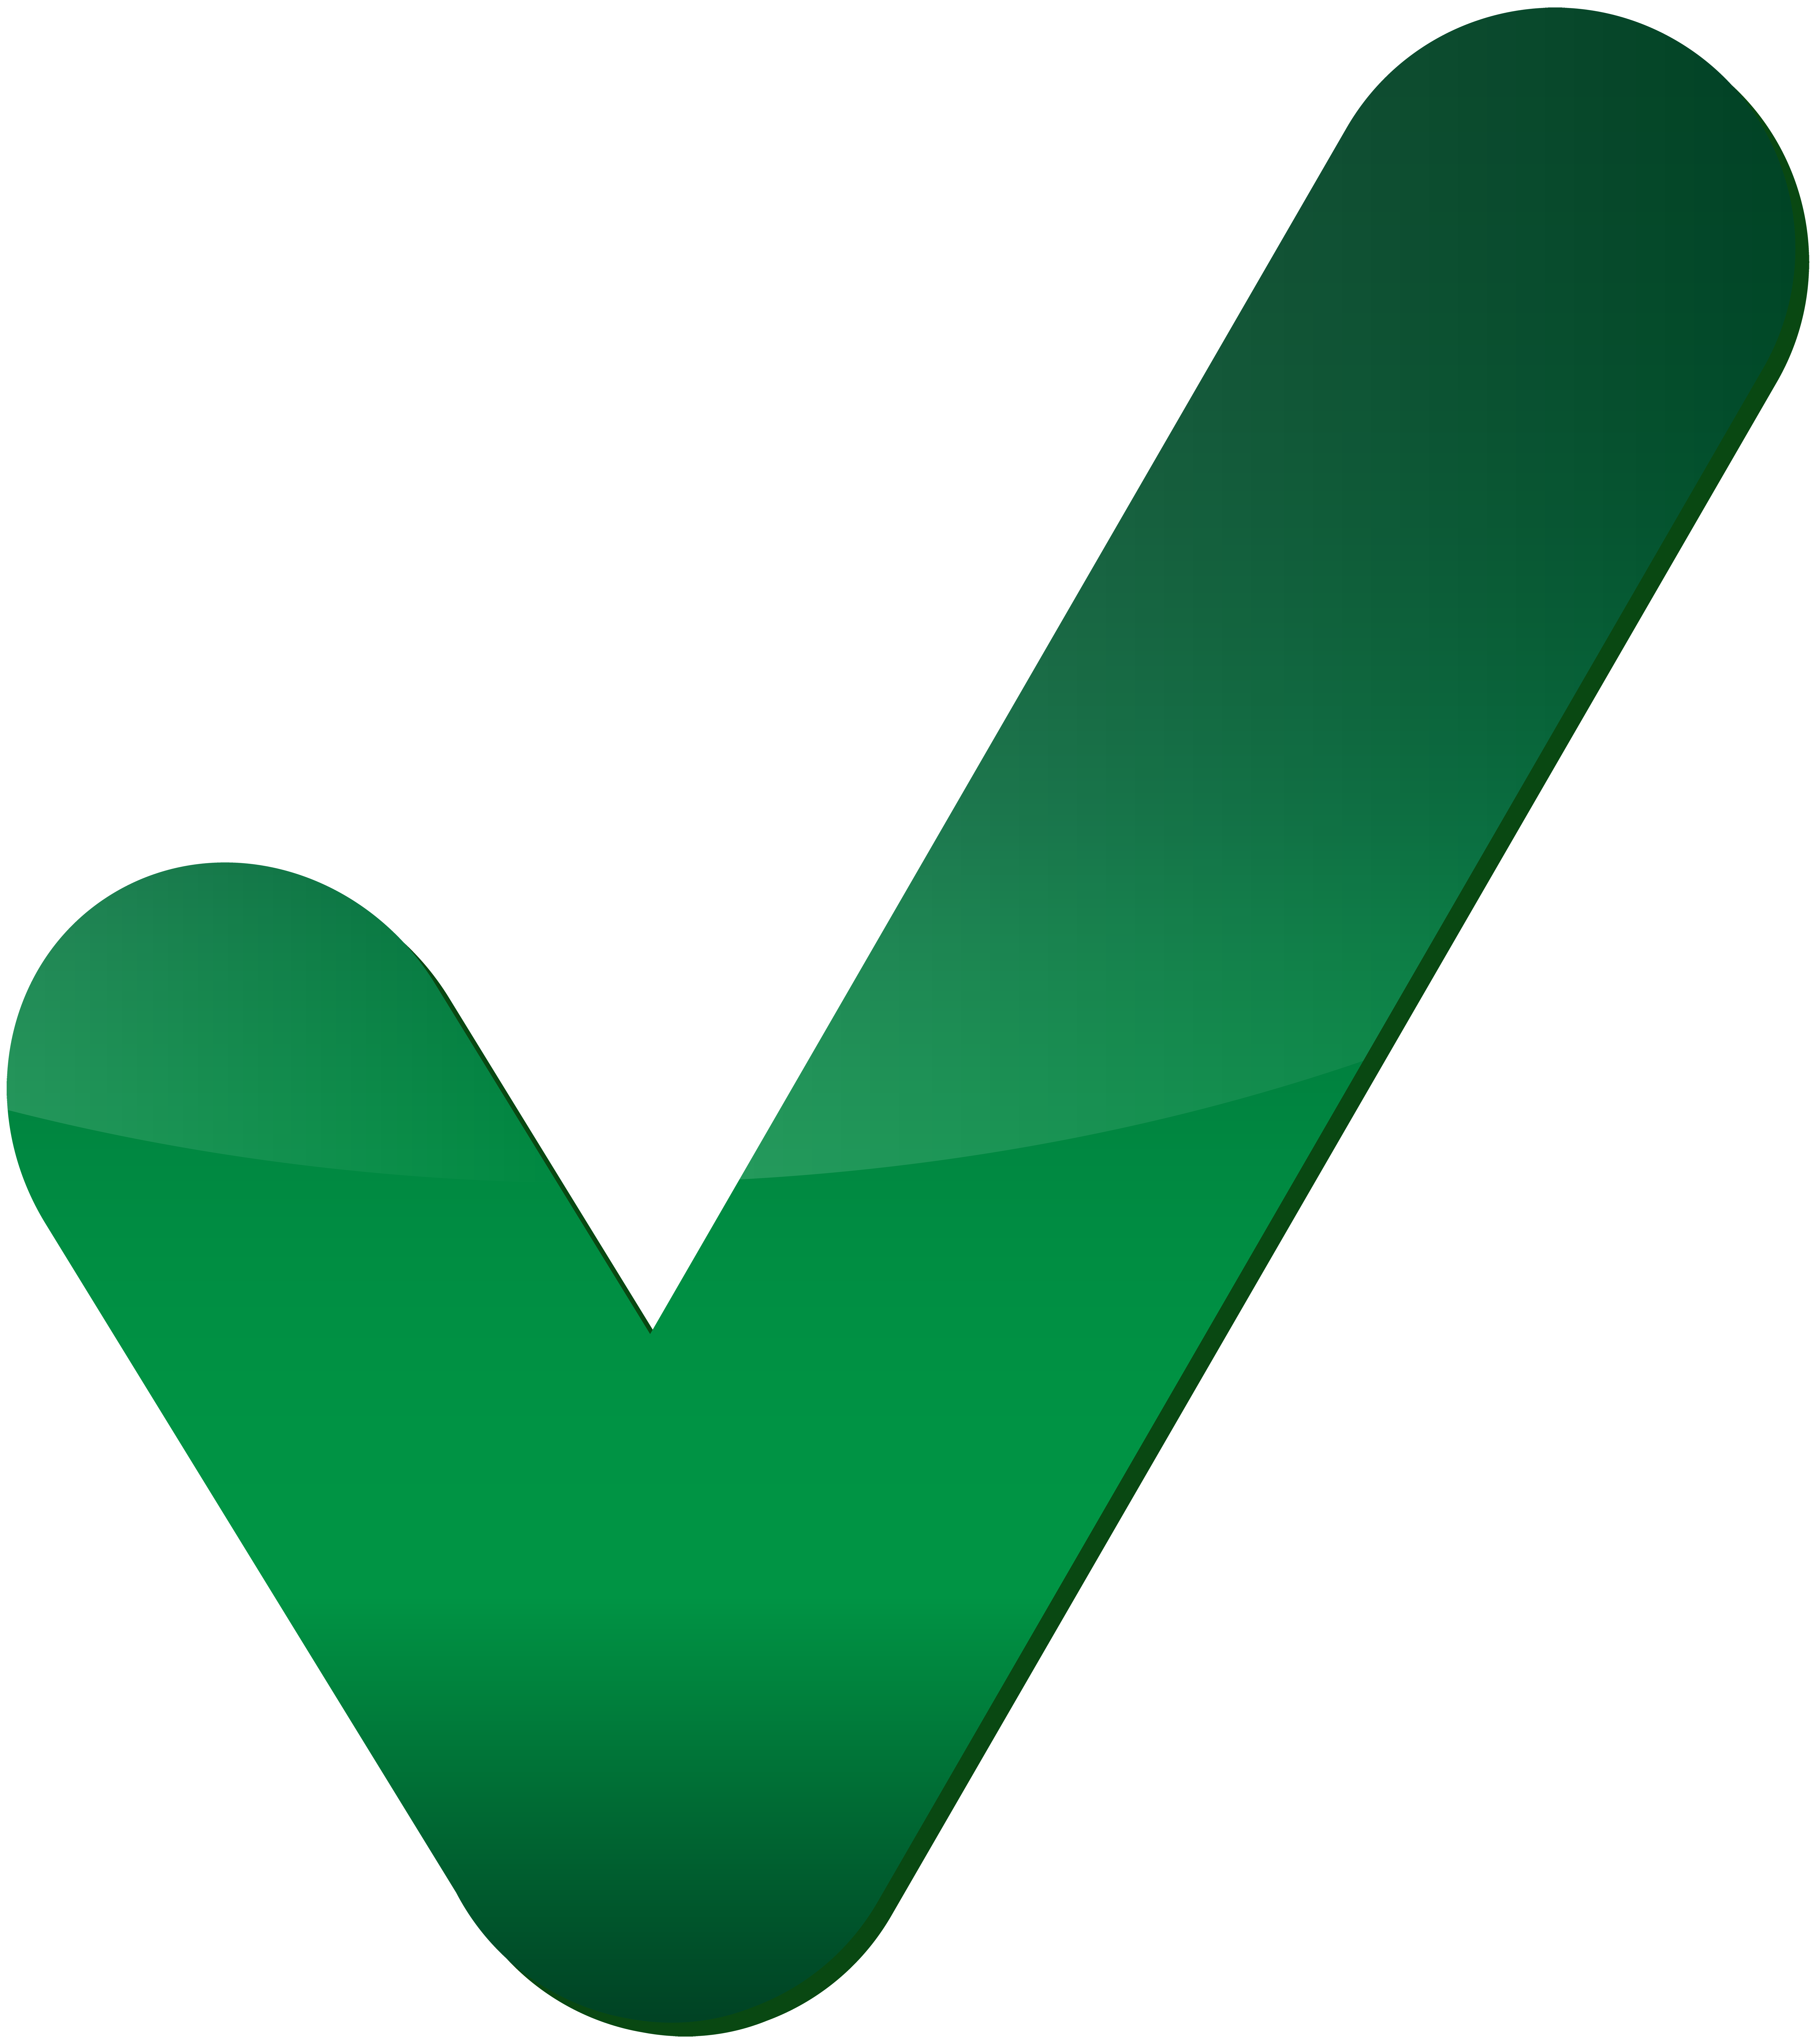 Green mark png clip. Check clipart transparent background